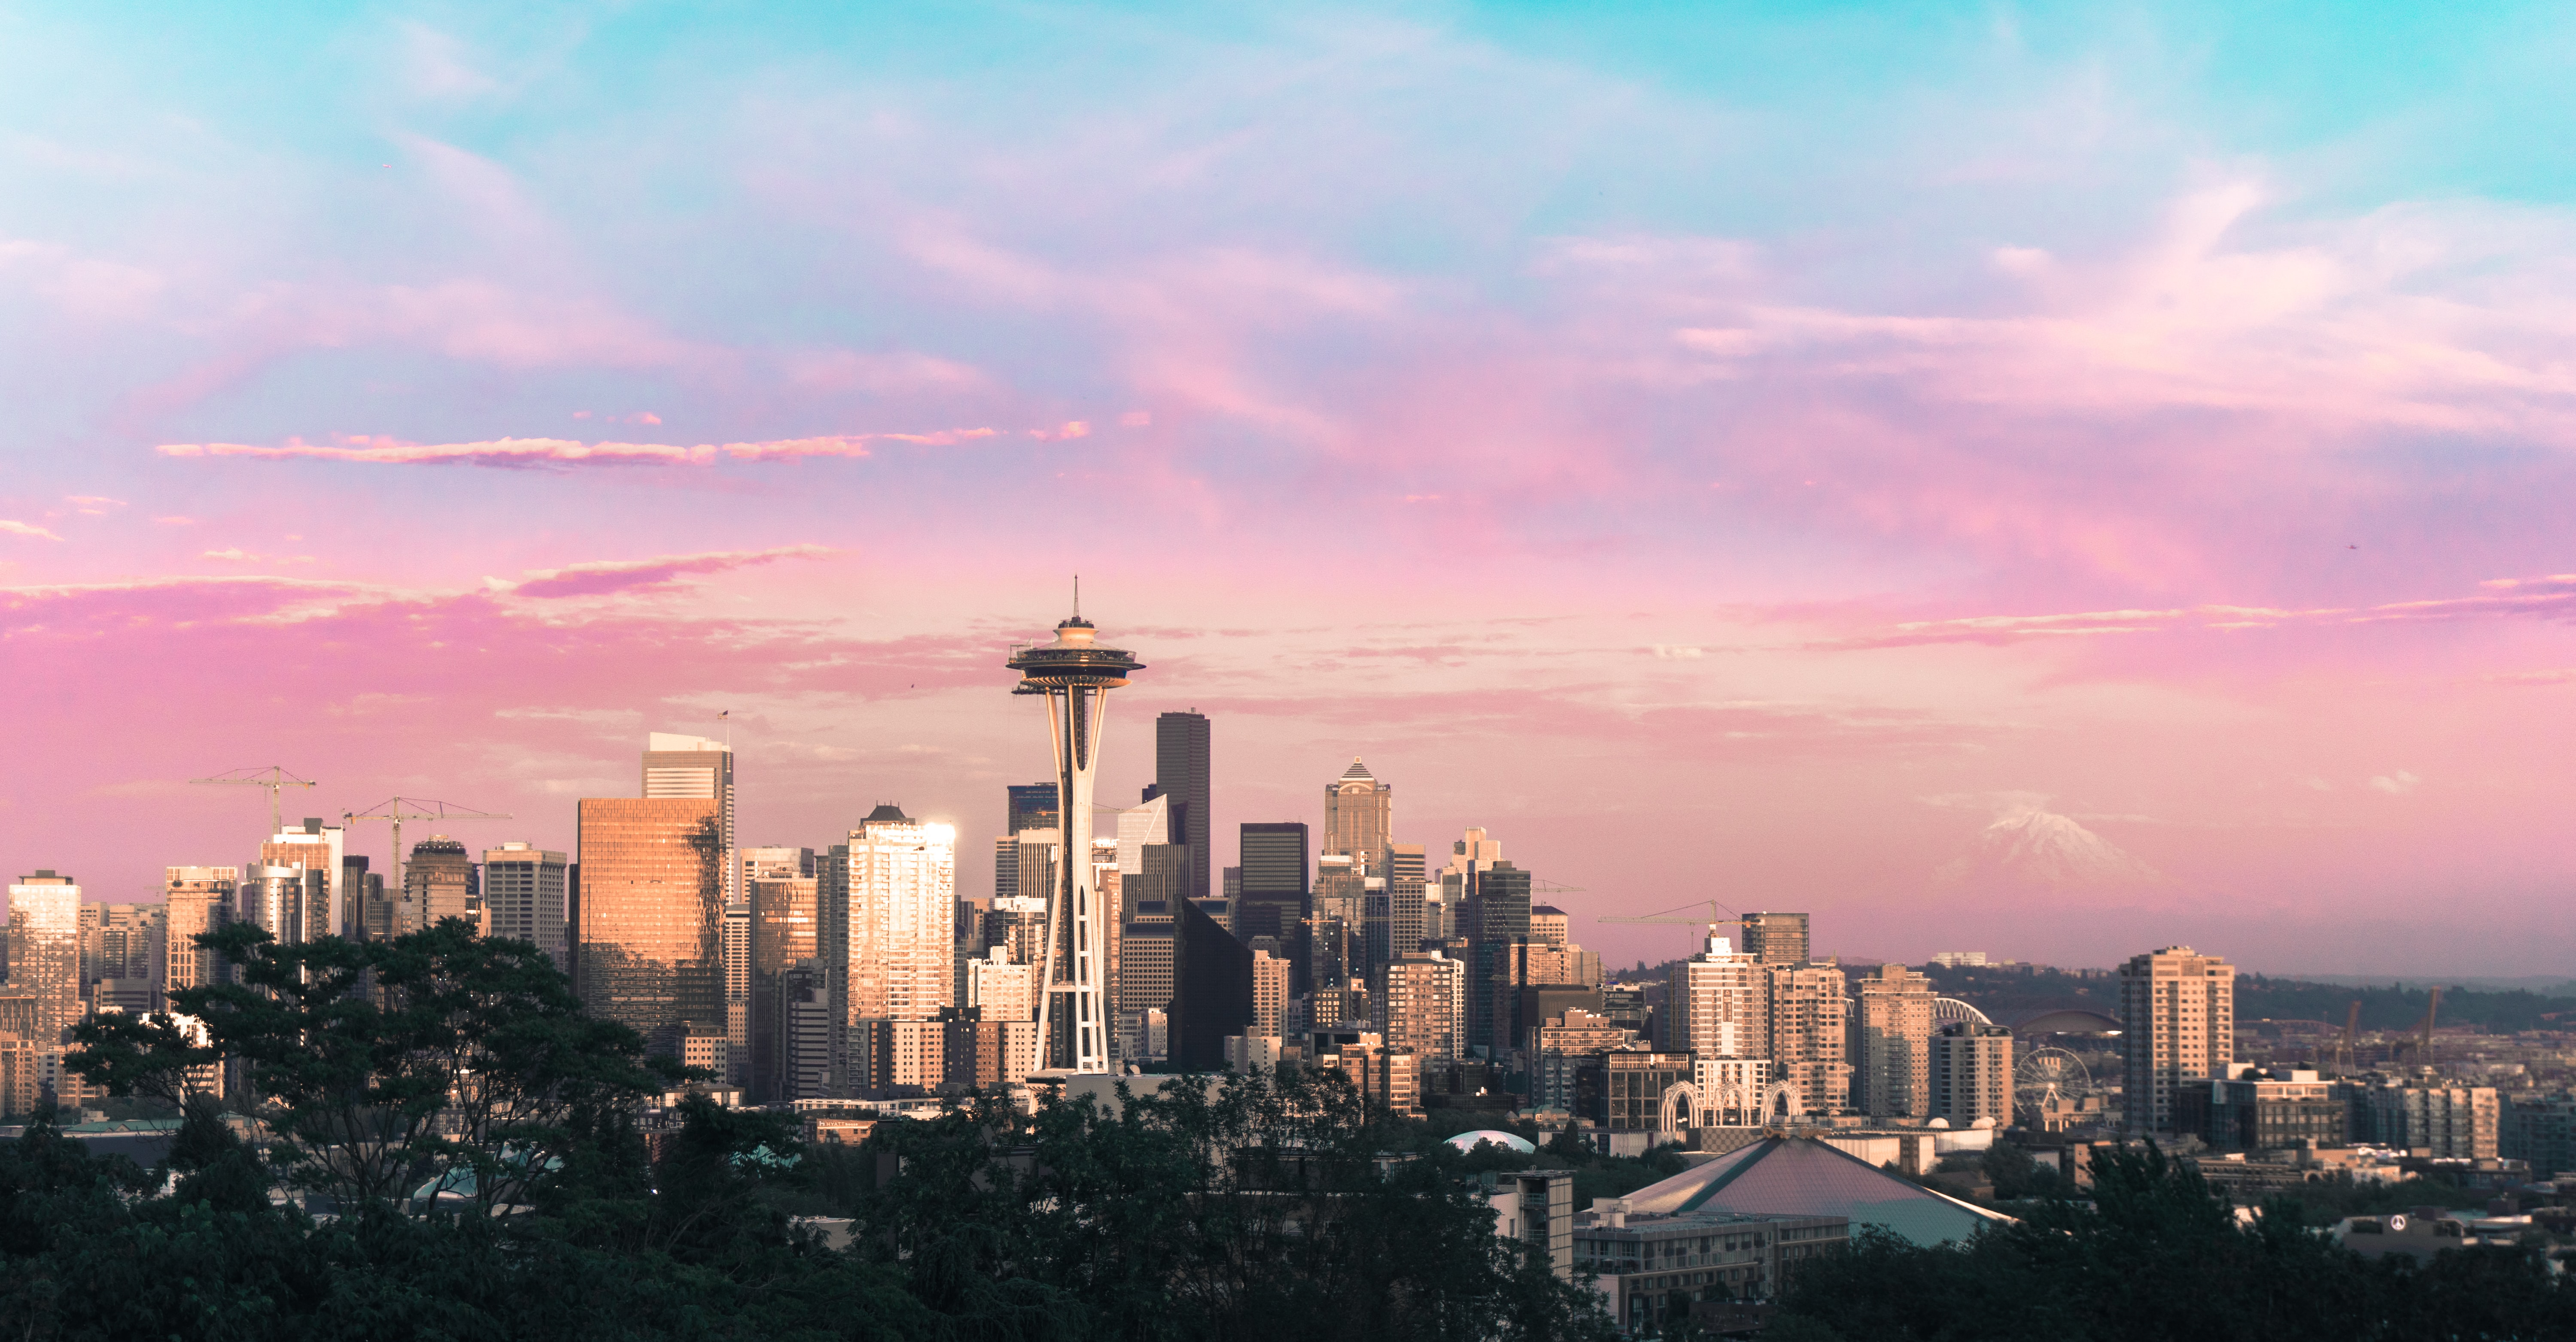 highrise buildings under pink and blue sky during daytime